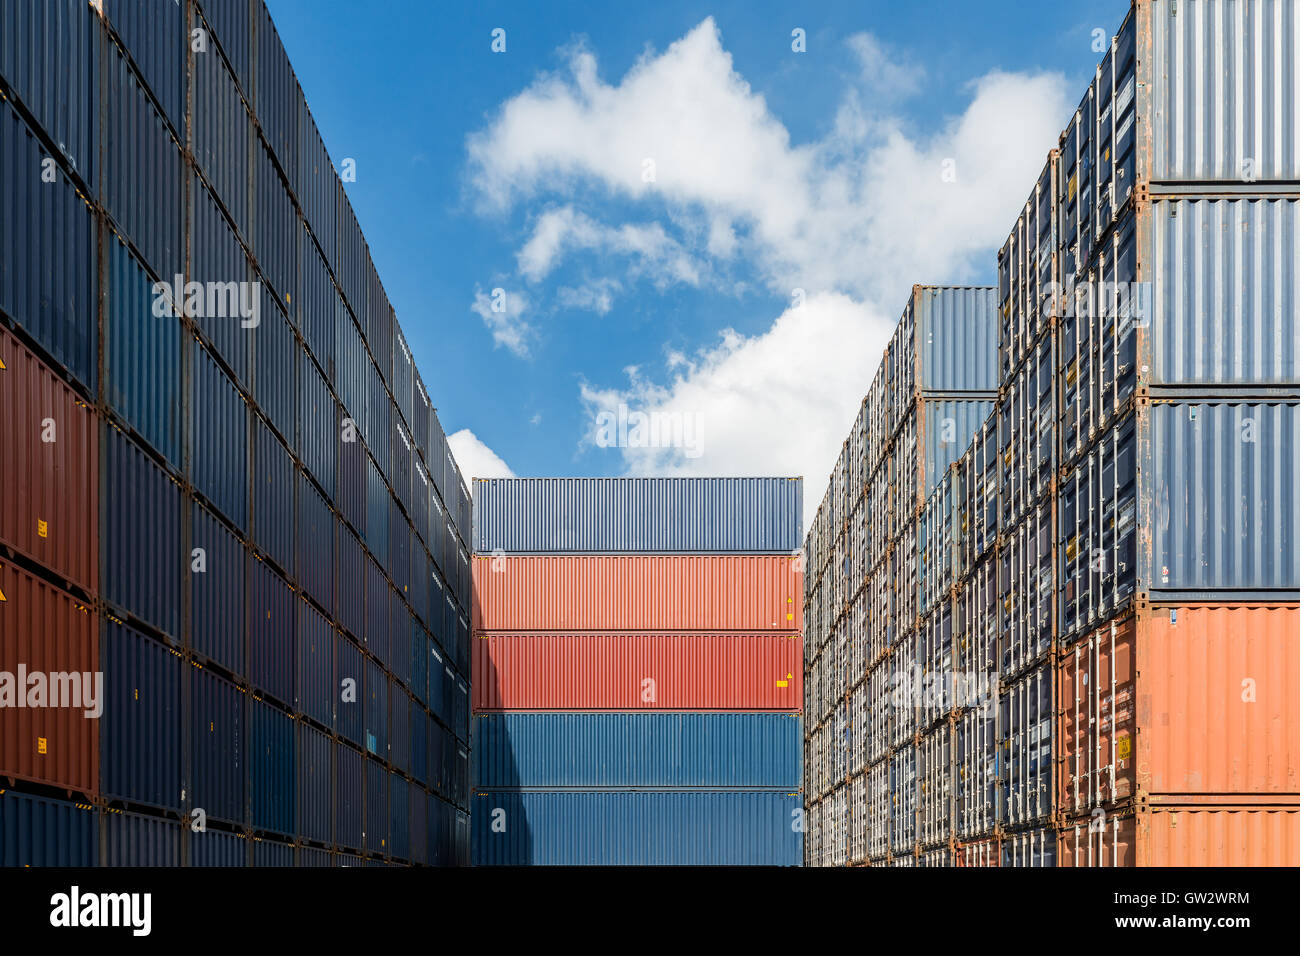 Stack of cargo containers at the docks use for import, export and logistics background - Stock Image